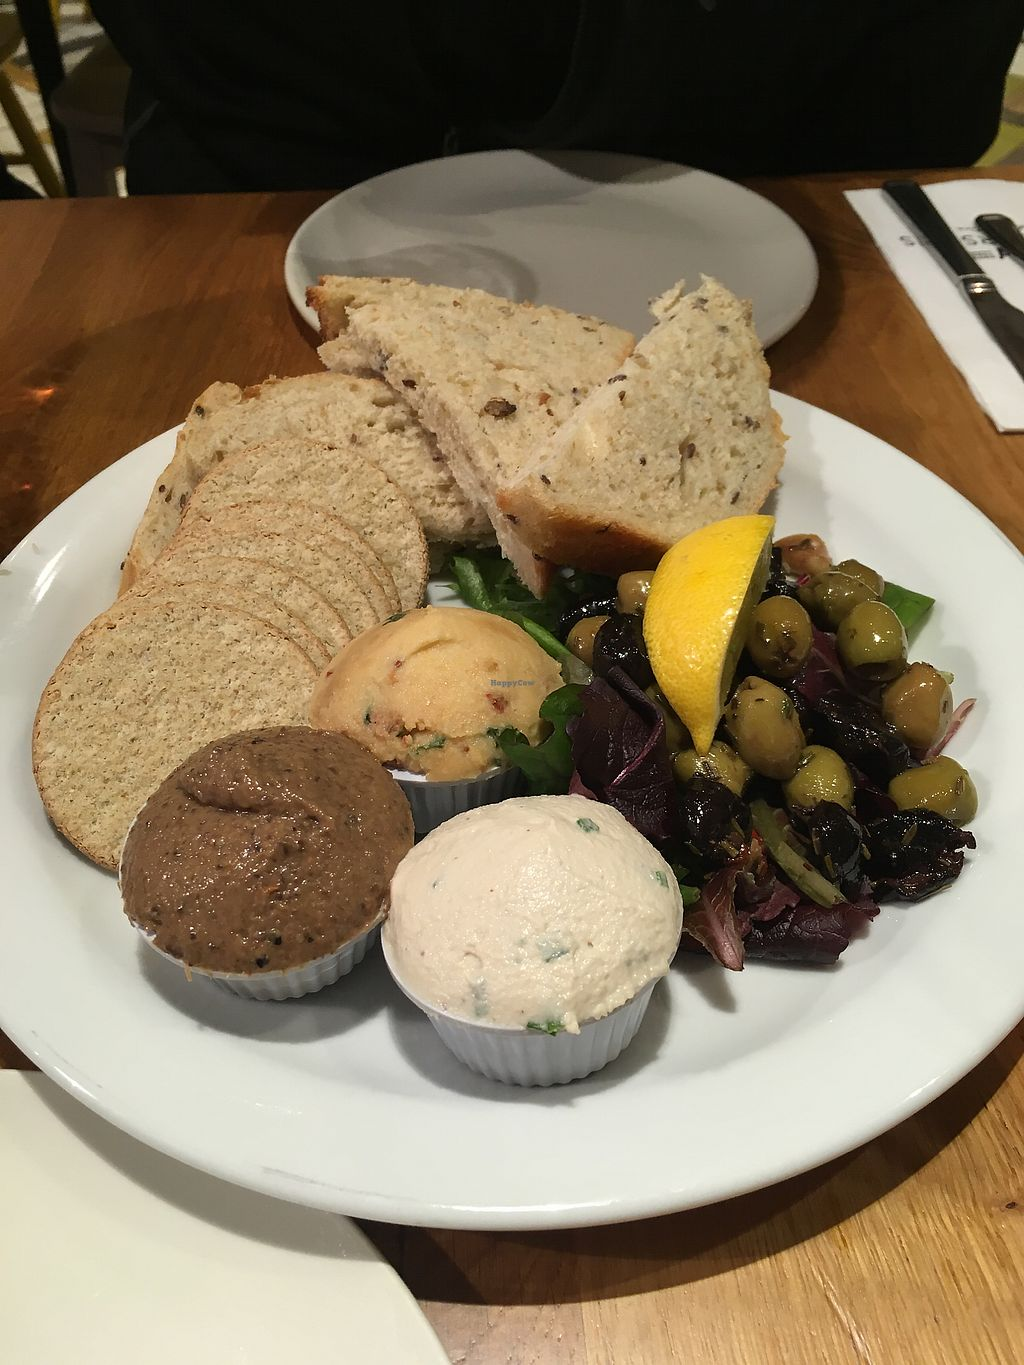 """Photo of Henderson's Vegan  by <a href=""""/members/profile/TheHealthyFoodfreak"""">TheHealthyFoodfreak</a> <br/>Vorspeise... Super leckeres Cashewmus-Aufstrich <br/> January 7, 2018  - <a href='/contact/abuse/image/59873/343996'>Report</a>"""